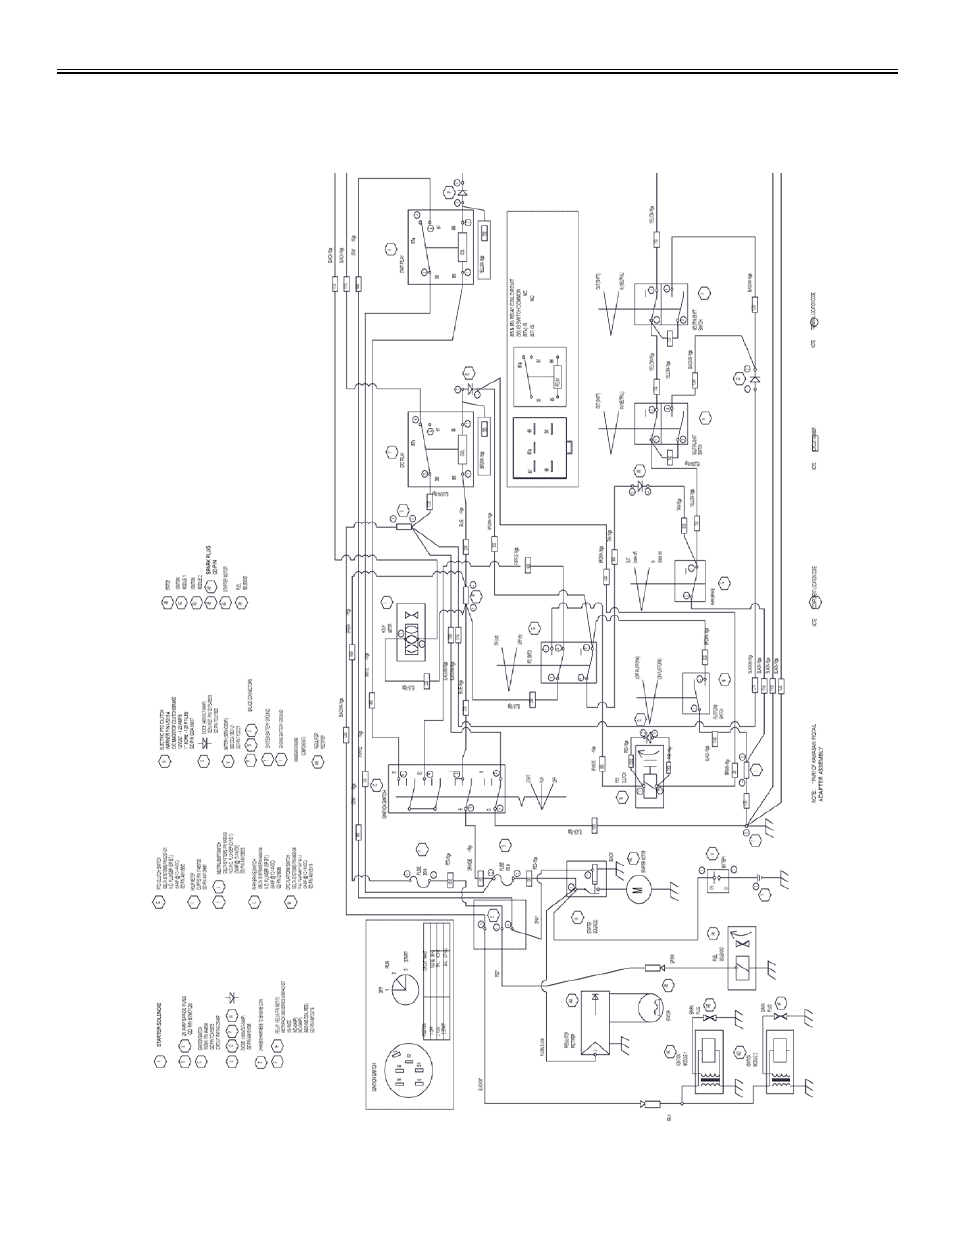 medium resolution of great dane wiring schematic wiring diagram schematics great dane hood great dane wiring schematic